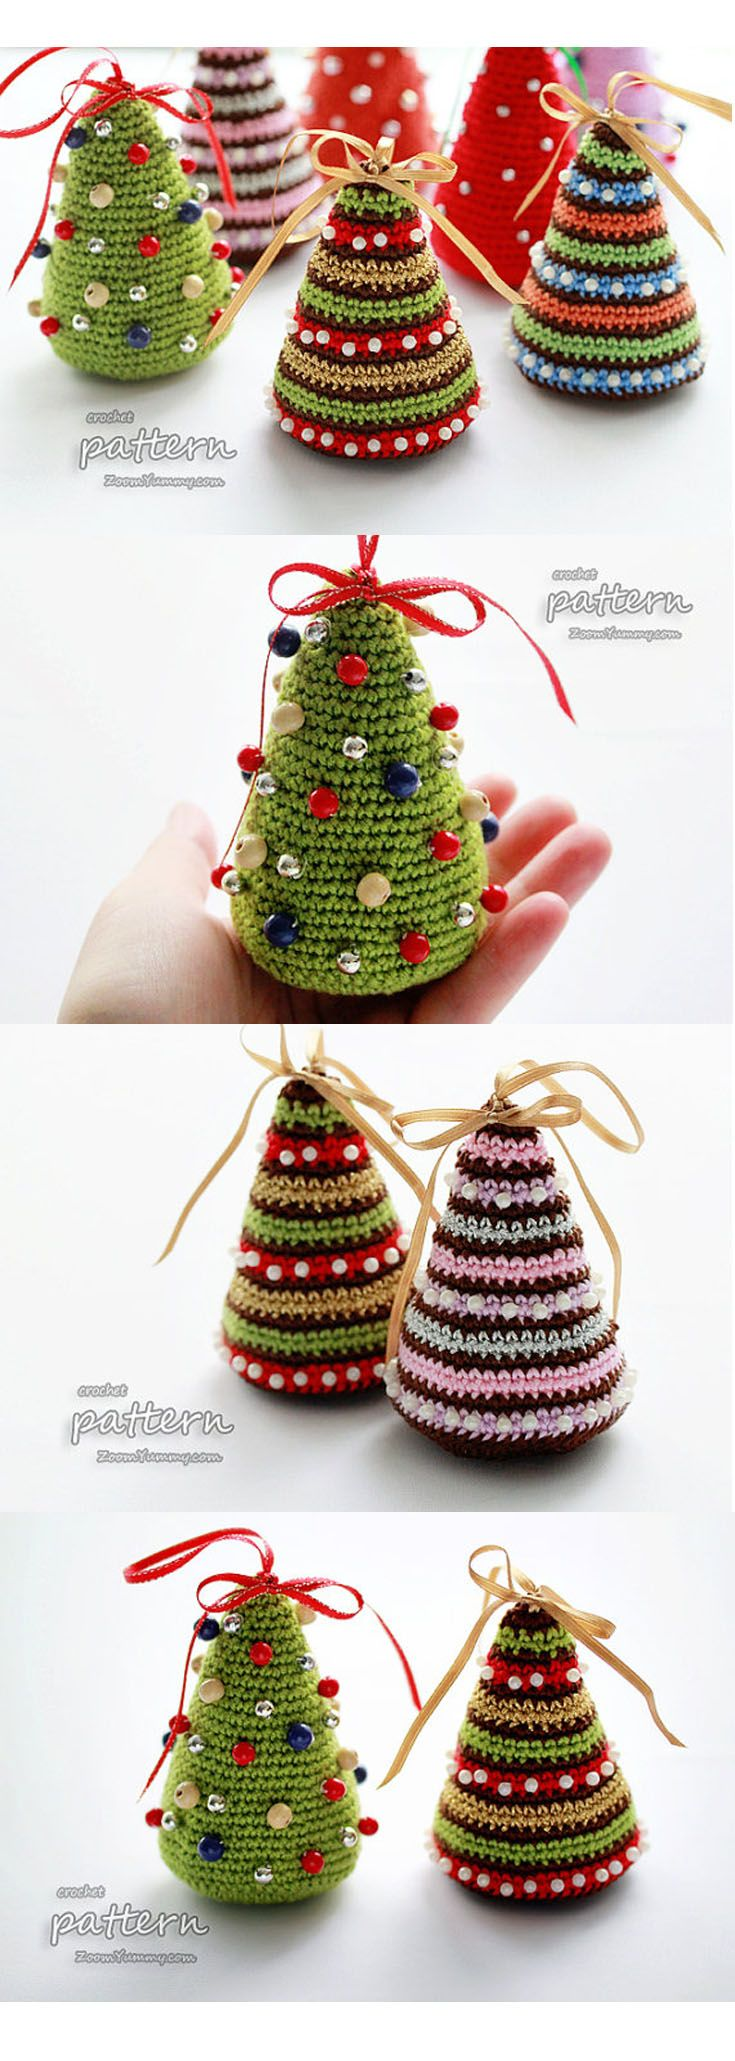 These happy little crochet Christmas trees are adorable! With a few bits  and bobs from